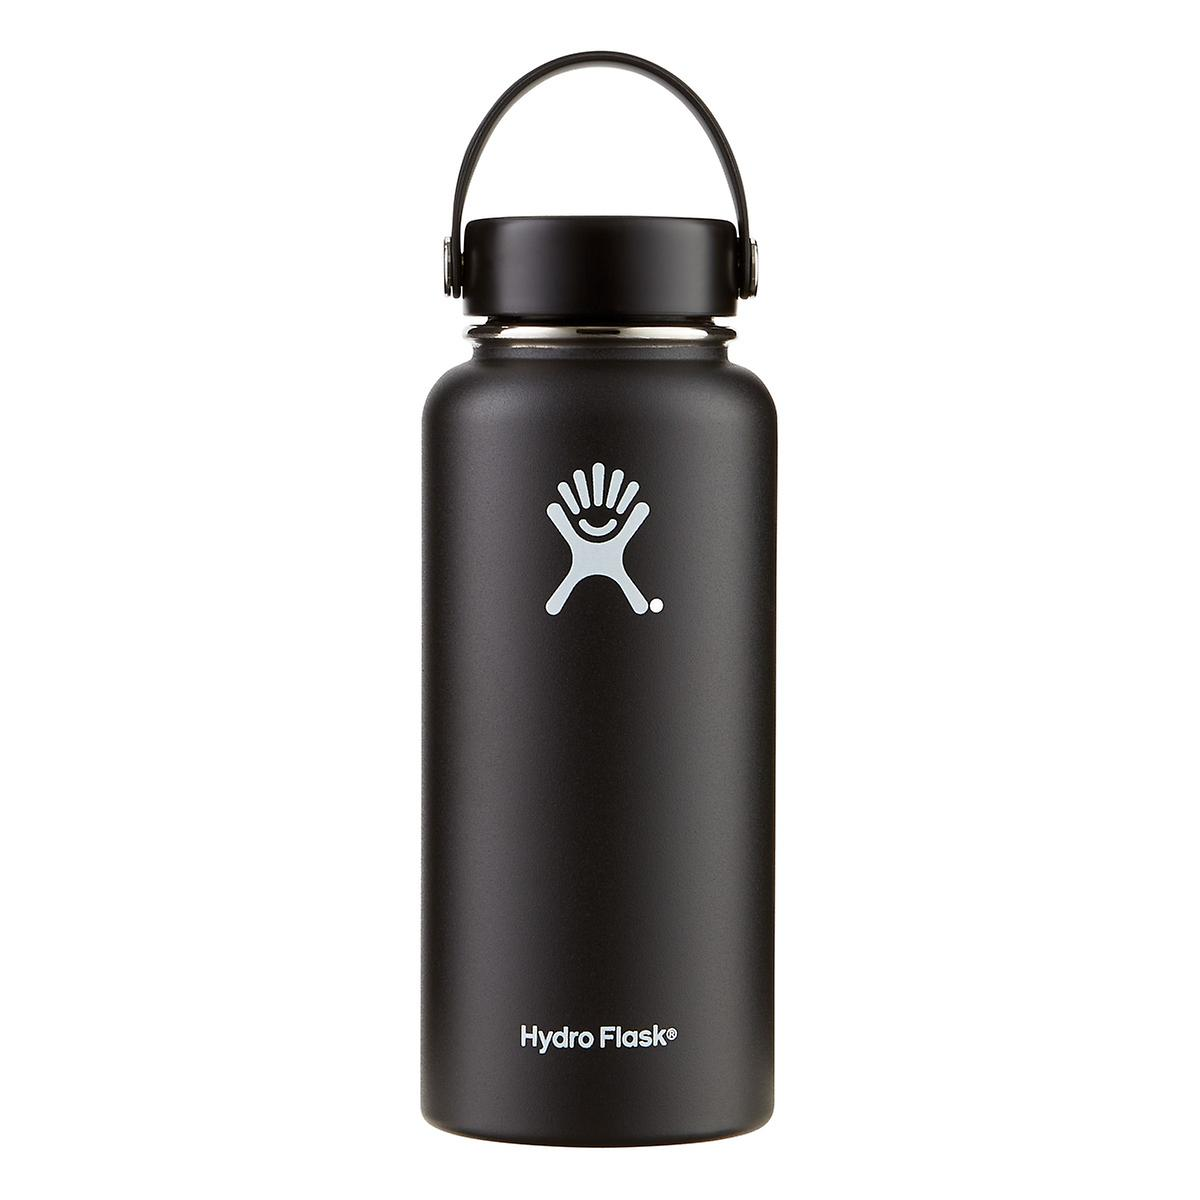 bd62a8627d Black 32 oz. Wide Mouth Hydro Flask | The Container Store